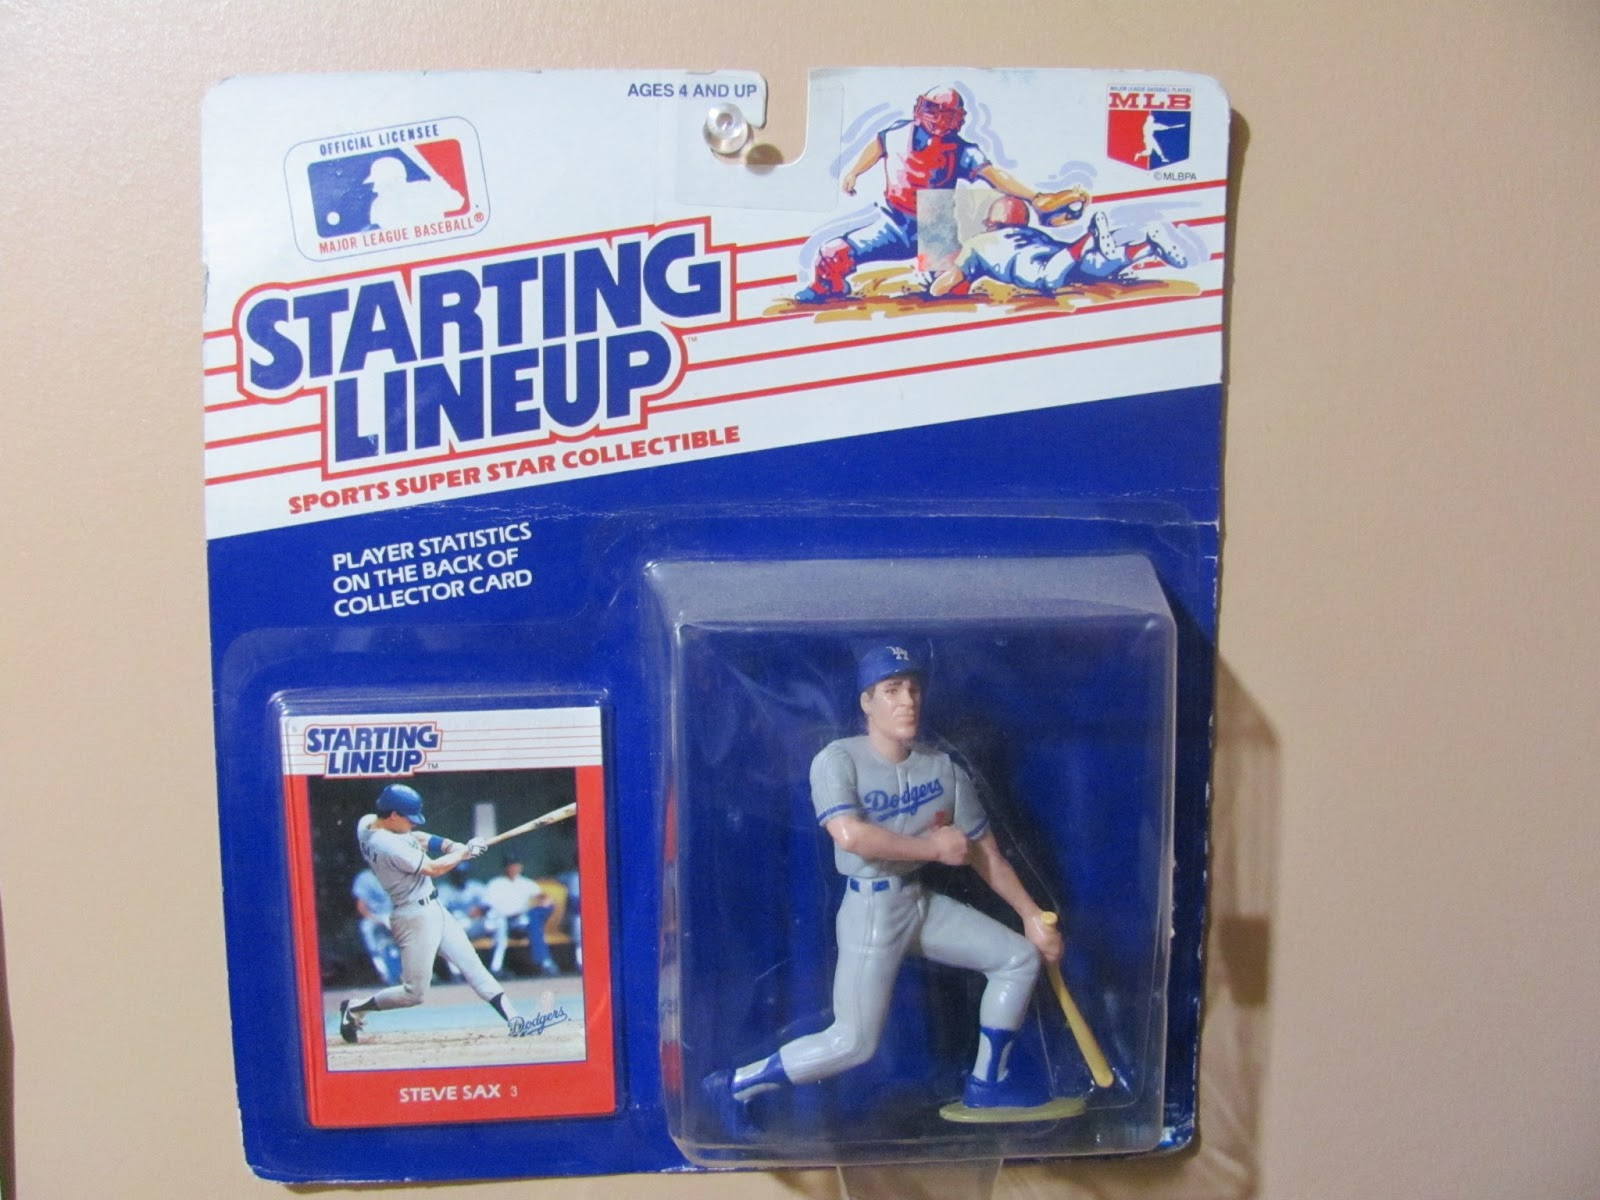 Steve Sax Starting Lineup figure on display in the box before going up for sale